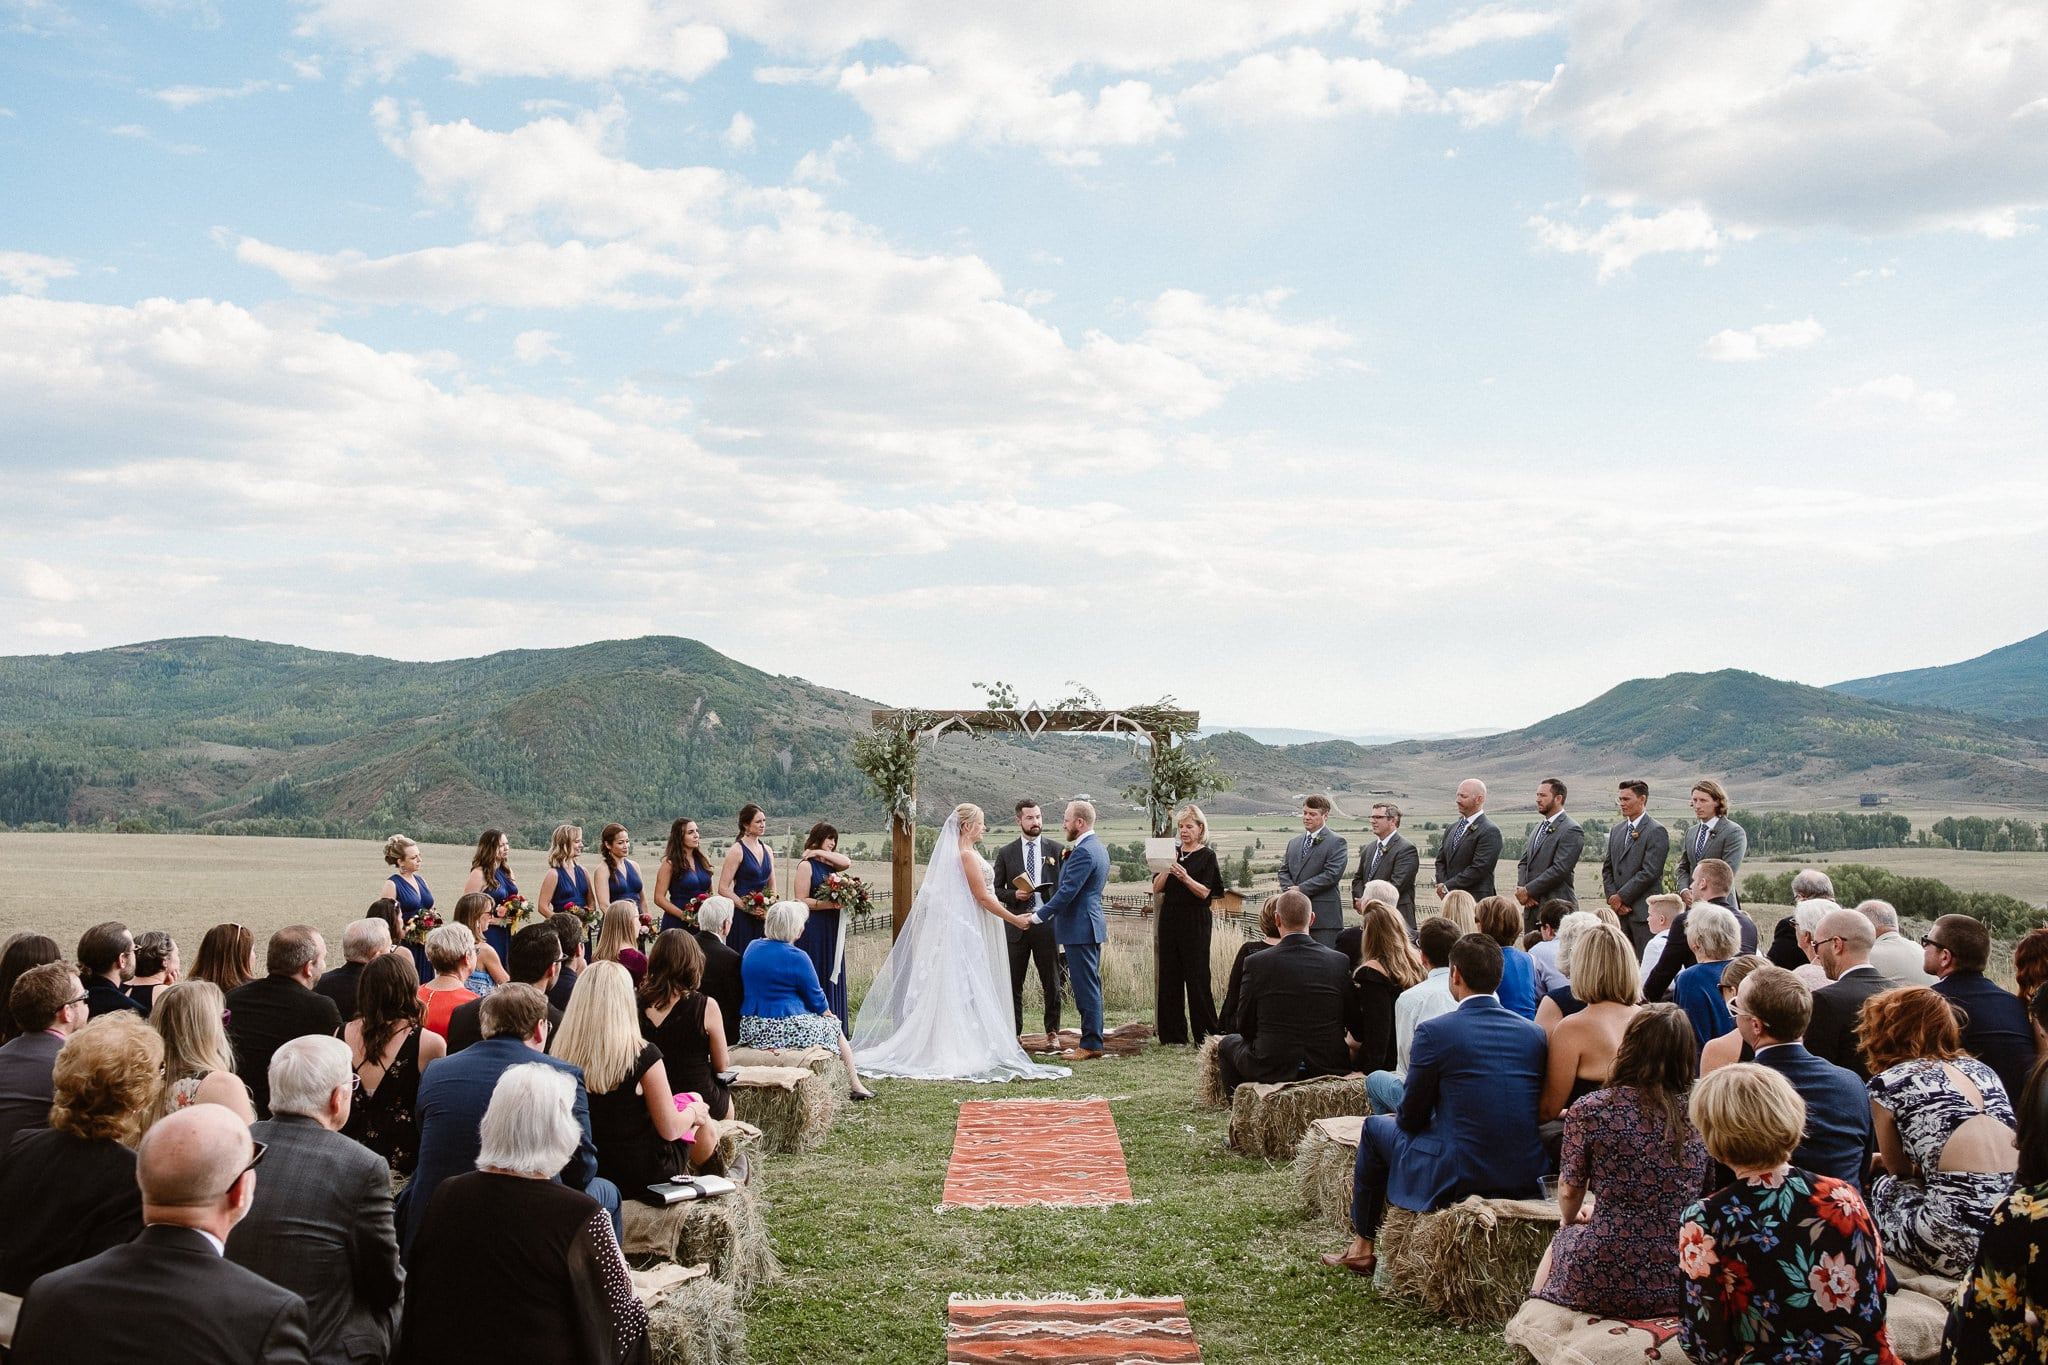 Steamboat Springs wedding photographer, La Joya Dulce wedding, Colorado ranch wedding venues, outdoor wedding ceremony, bridesmaids watching wedding ceremony, Colorado wedding, Rocky Mountain wedding, ranch wedding